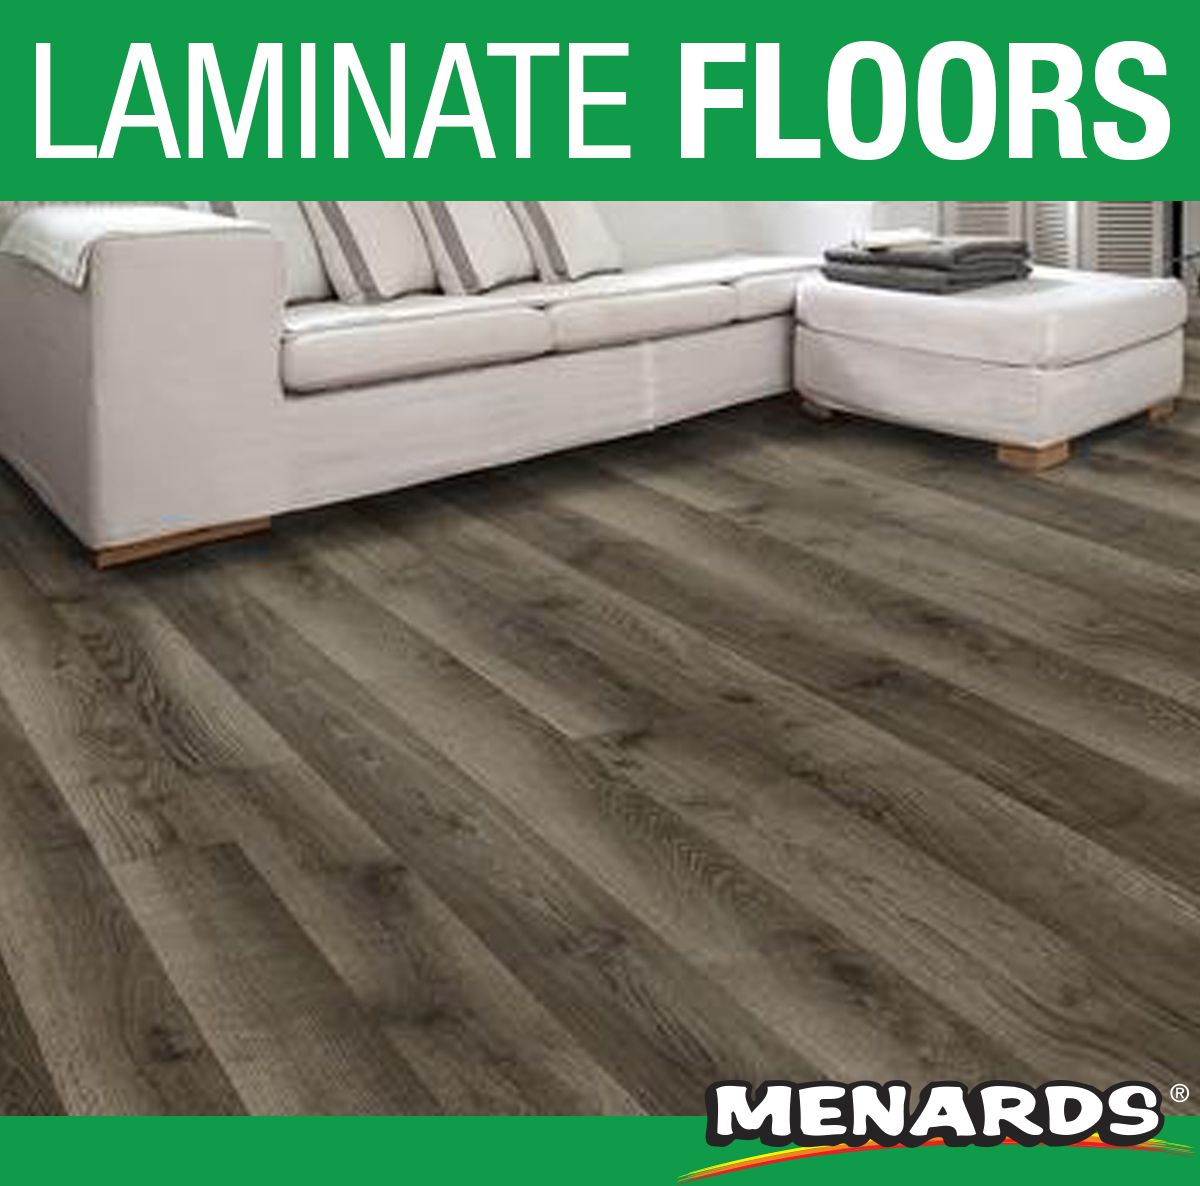 Beautiful Flooring In Your Home Can Be Easily Done Monroe Park Laminate Flooring Features The Ideal Combinat Beautiful Flooring Oak Laminate Flooring Flooring